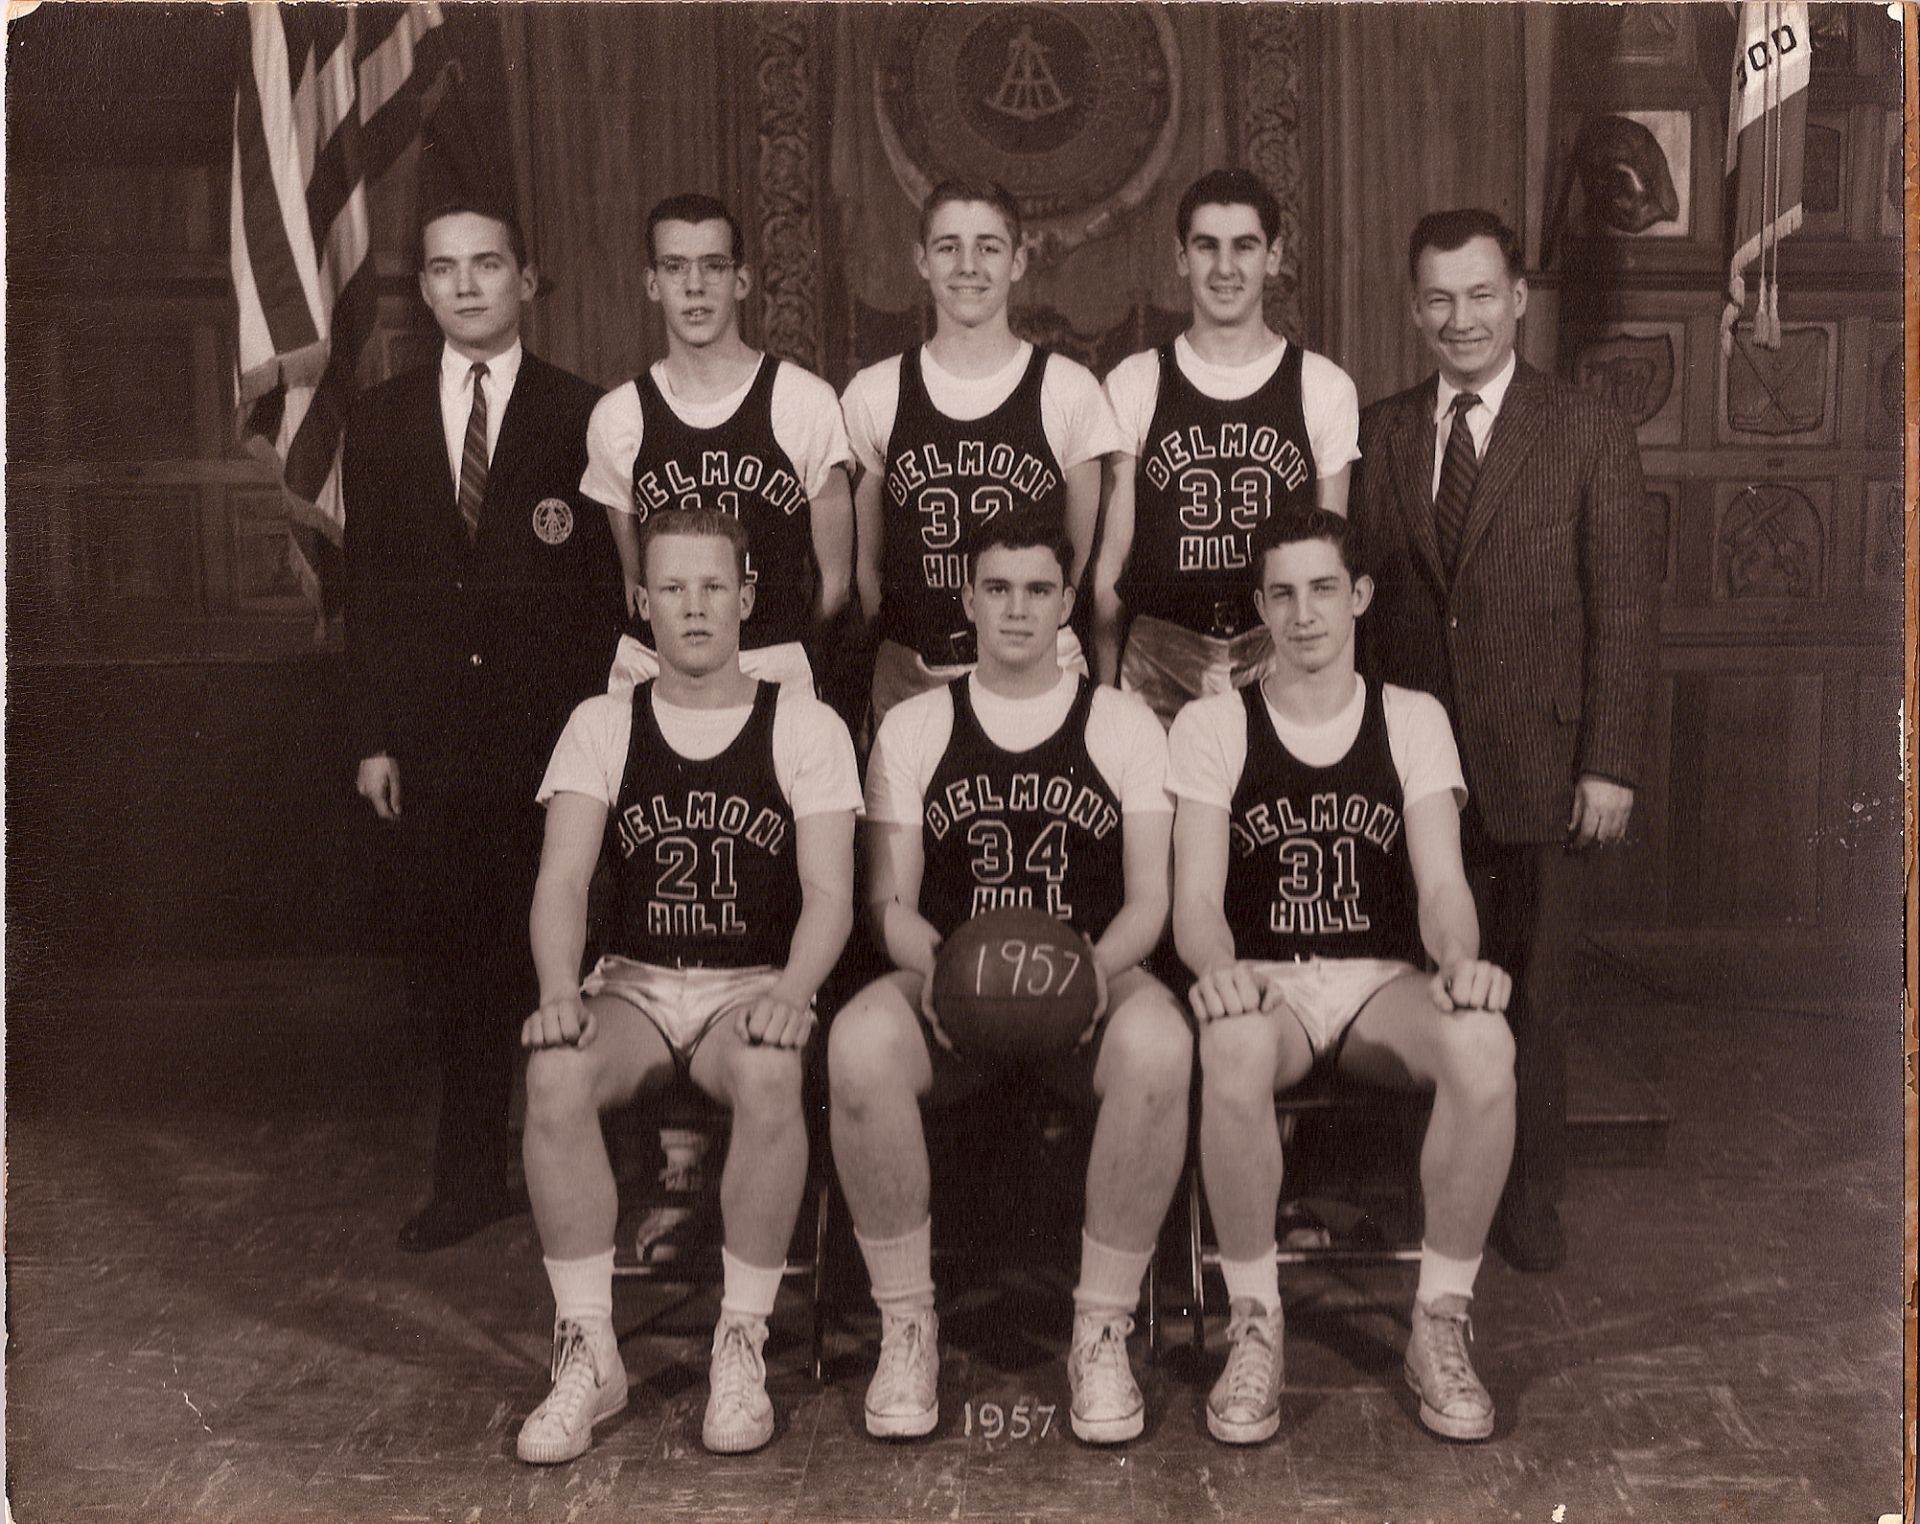 First Row: Keville, Captain Watters, Blackwood Second Row: S. Wilcox, Eyrick, J. Woodbury, Nahigian, Mr. Croke